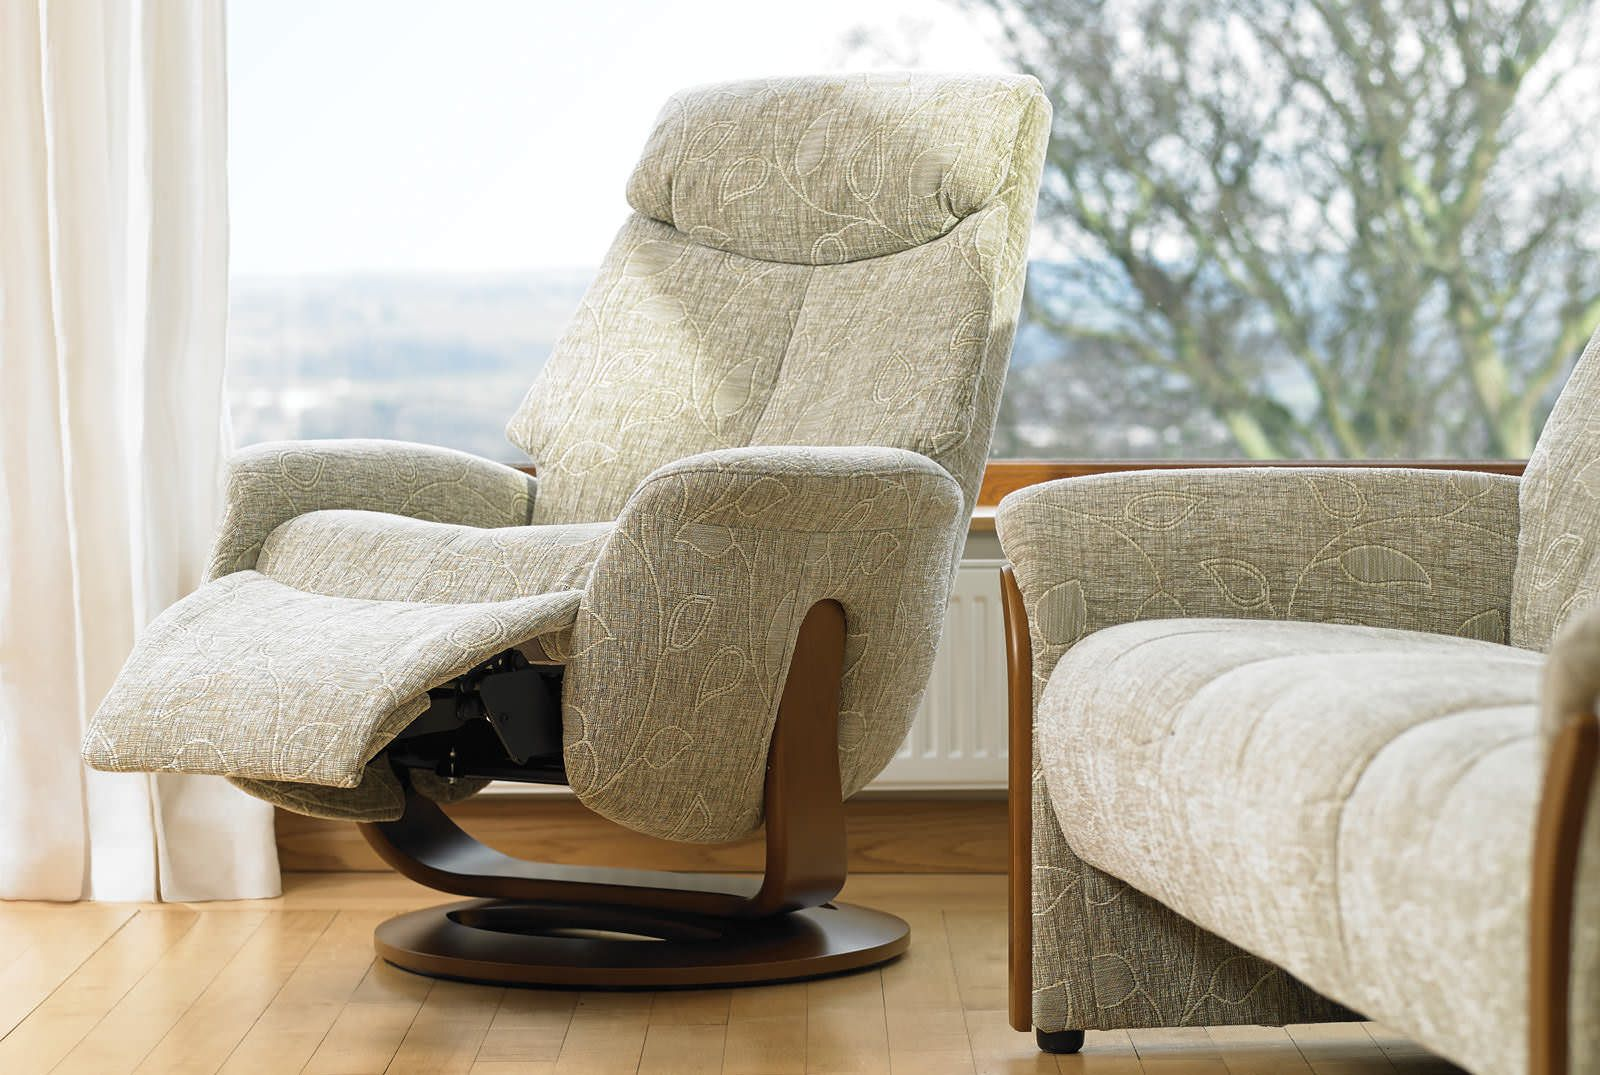 Appealing Swivel Recliner Automated System For Home Furniture